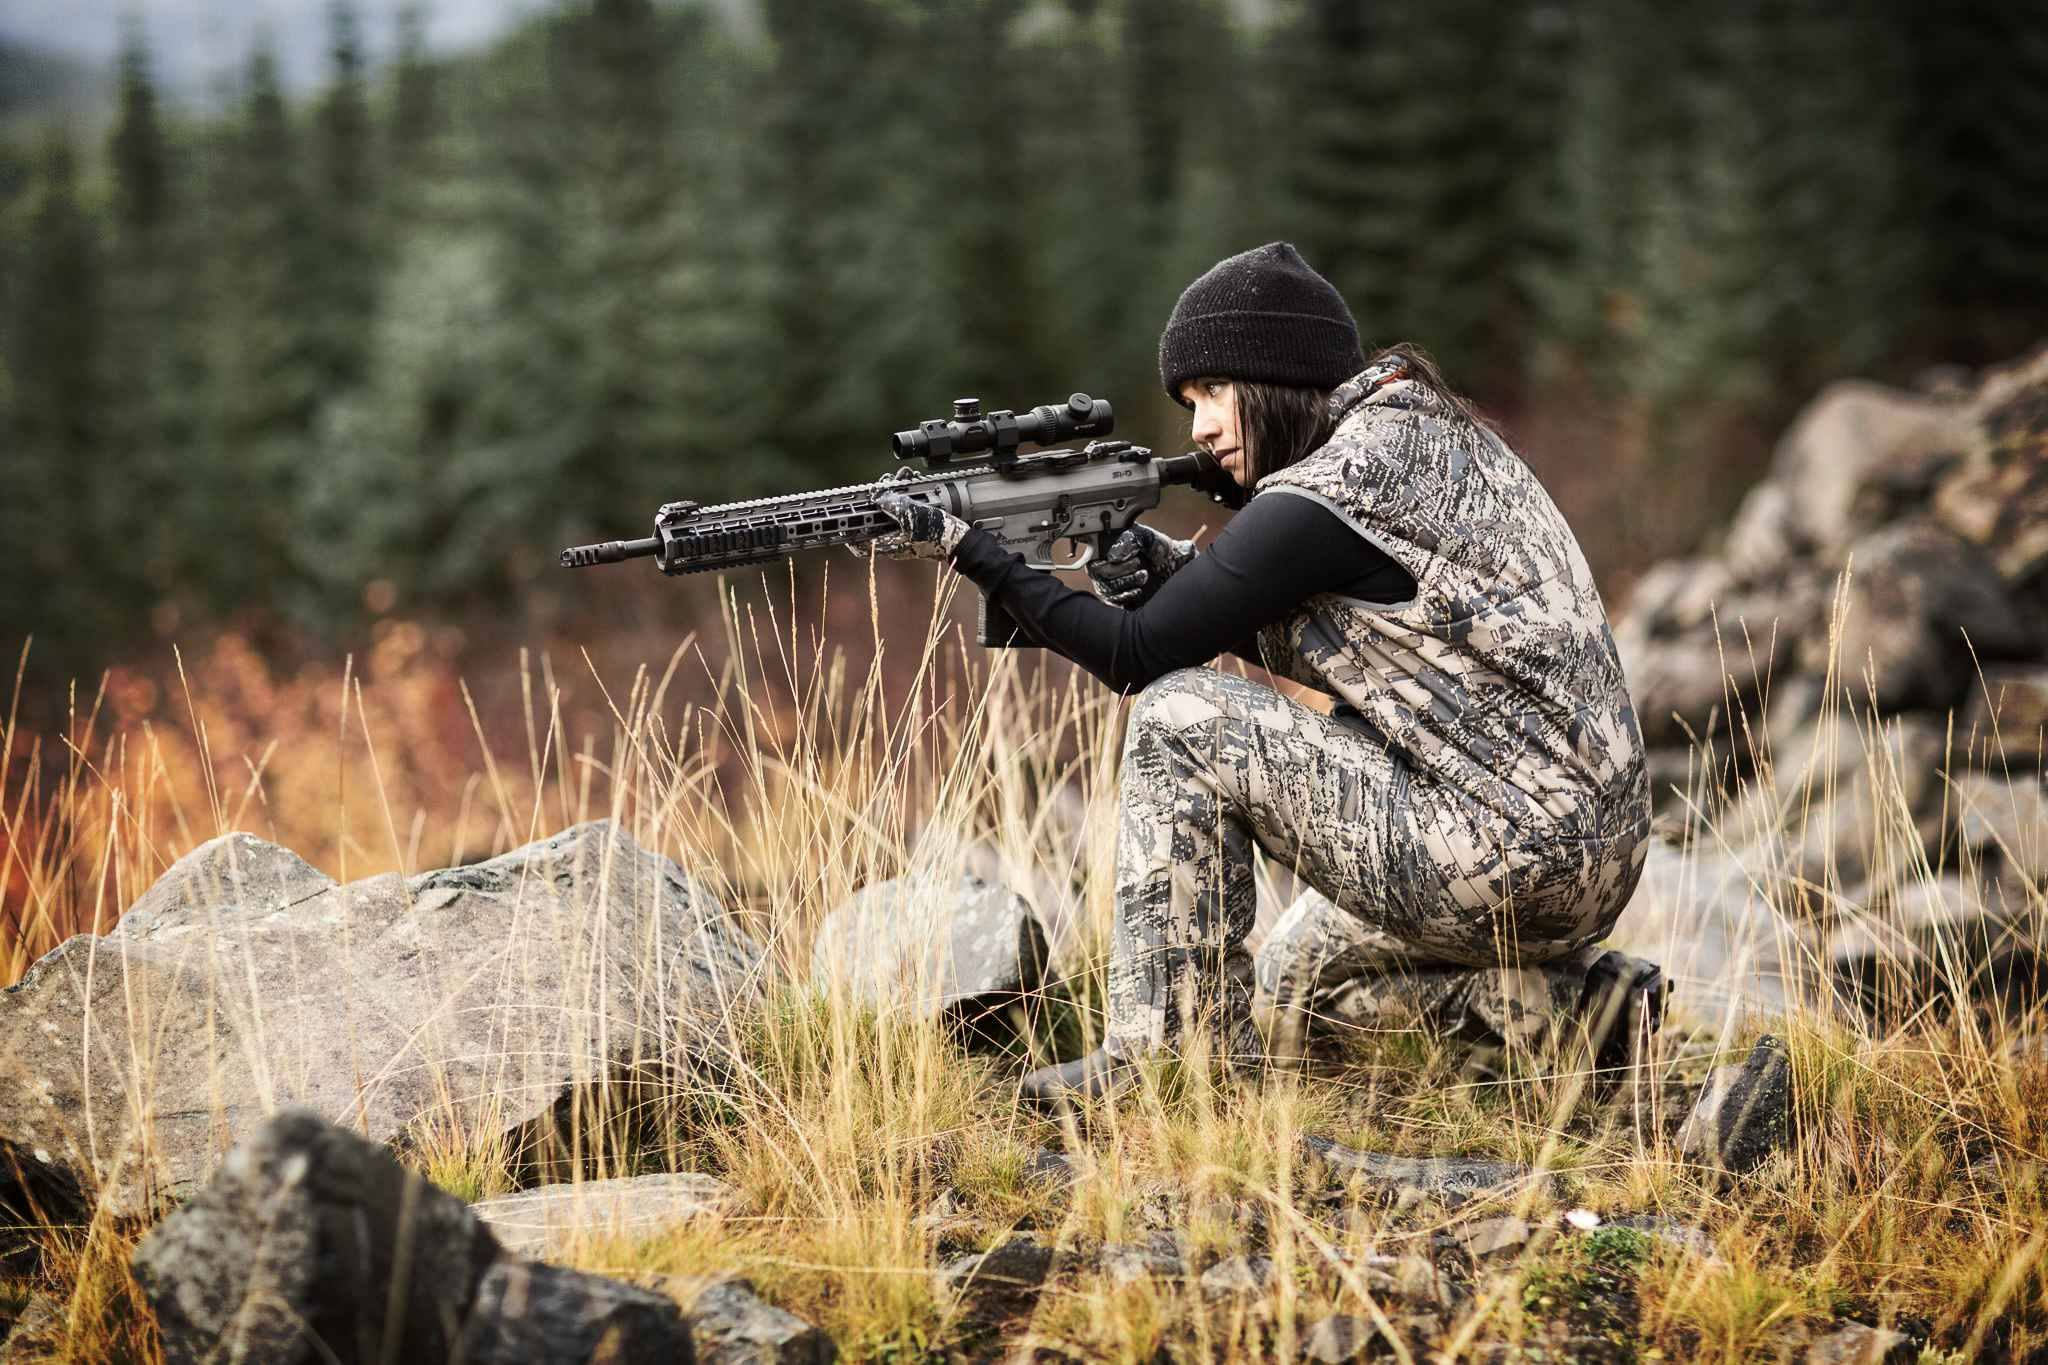 Hunting with a Semiautomatic Firearm in PA? List of approved animals